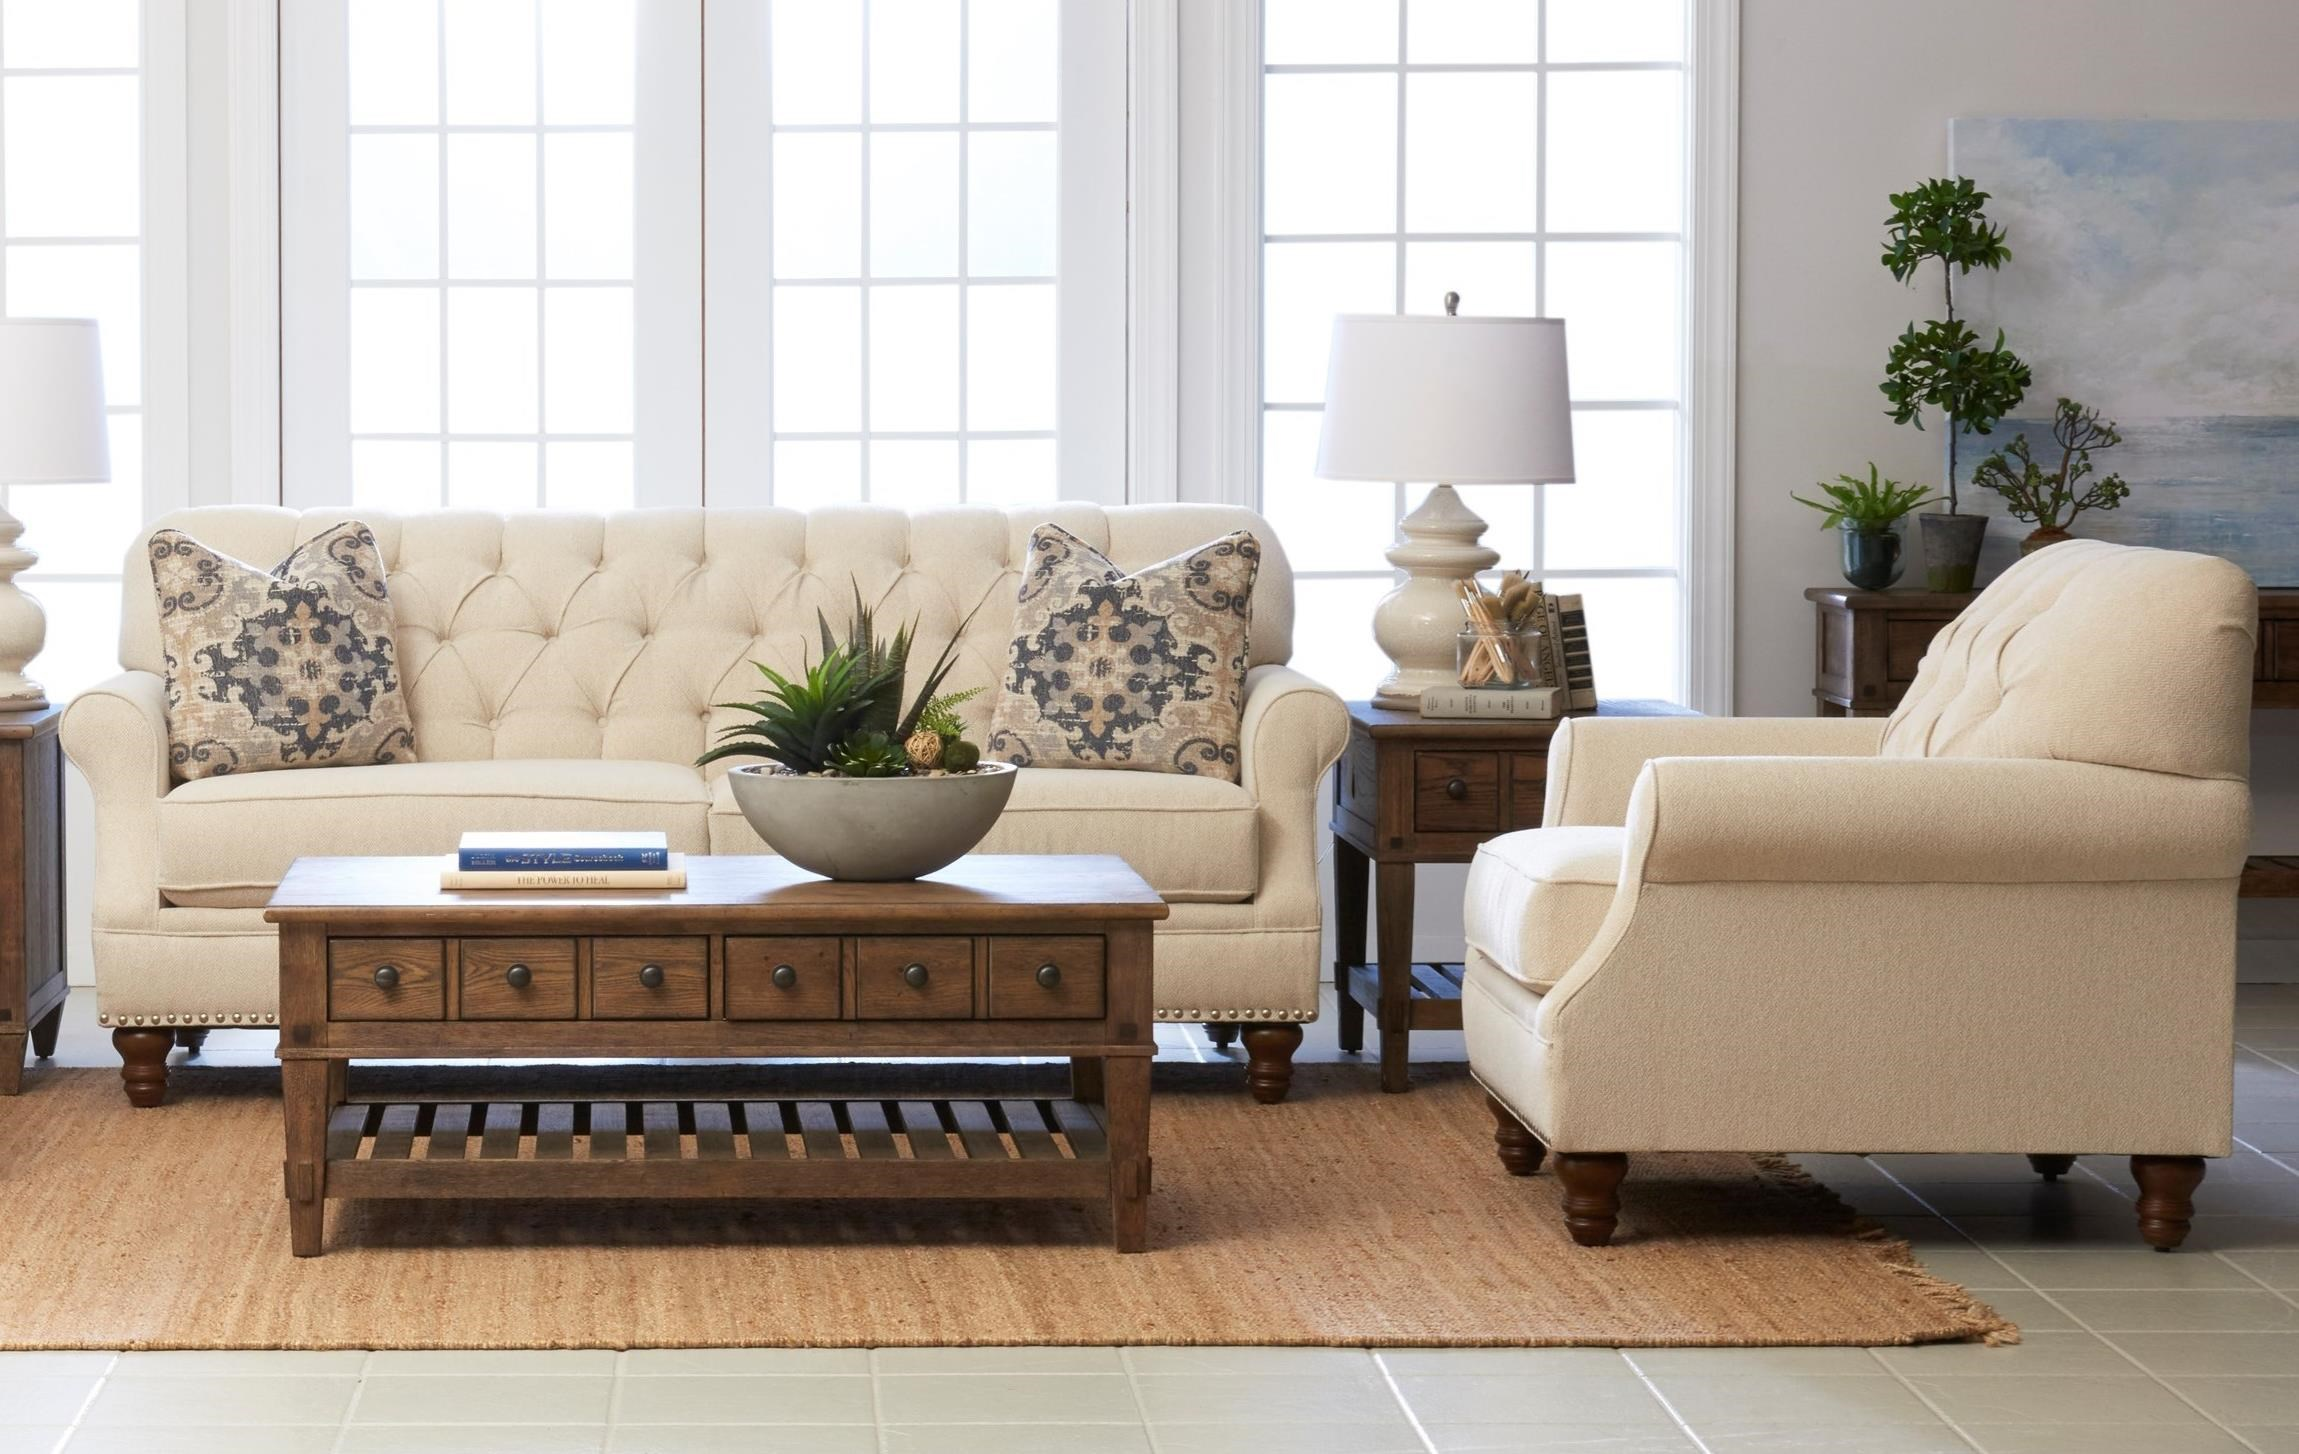 Burbank Living Room Group by Klaussner at Northeast Factory Direct